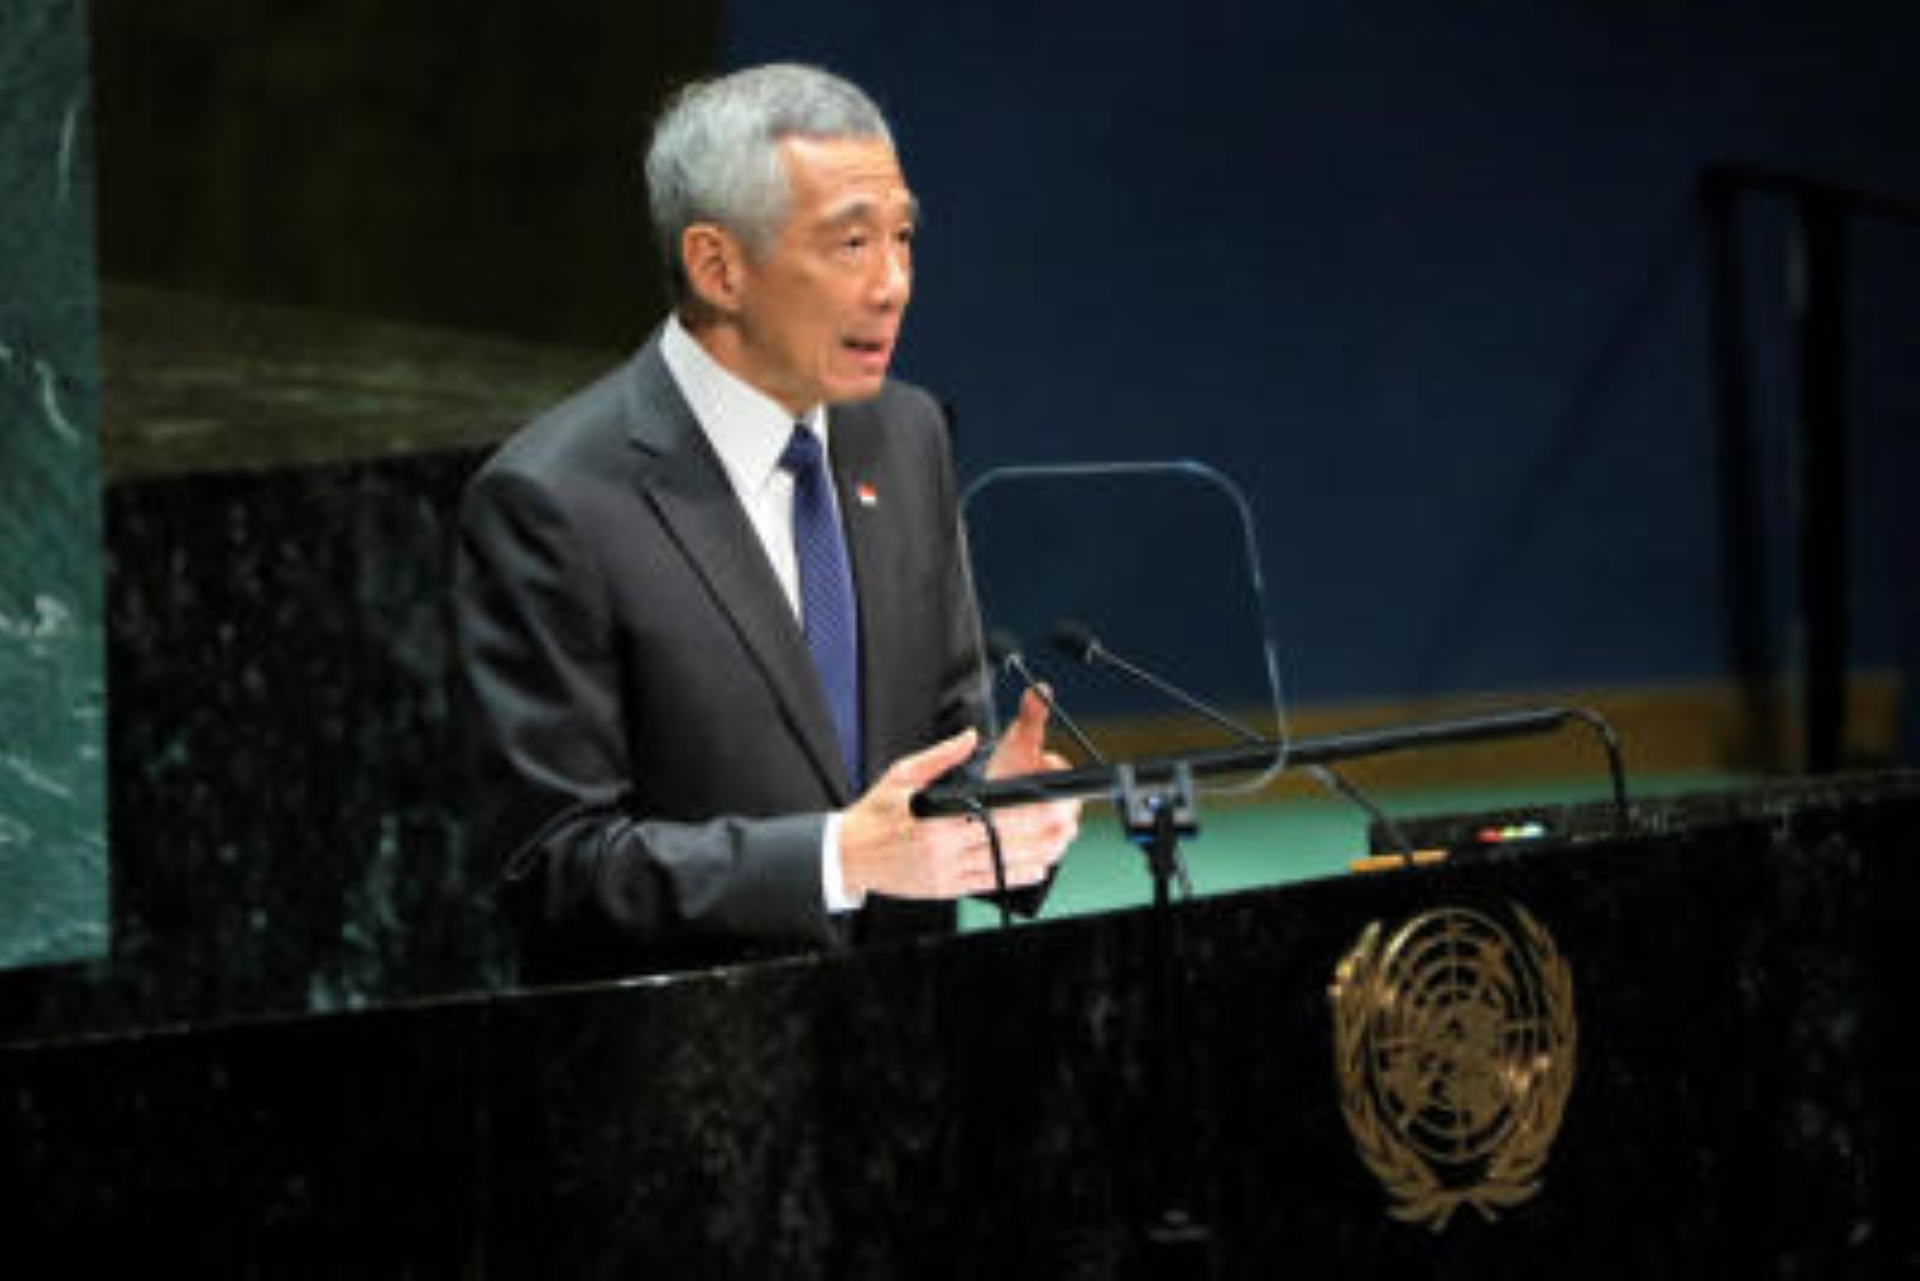 Hong Kong protest demands are unrealistic, Singapore PM says